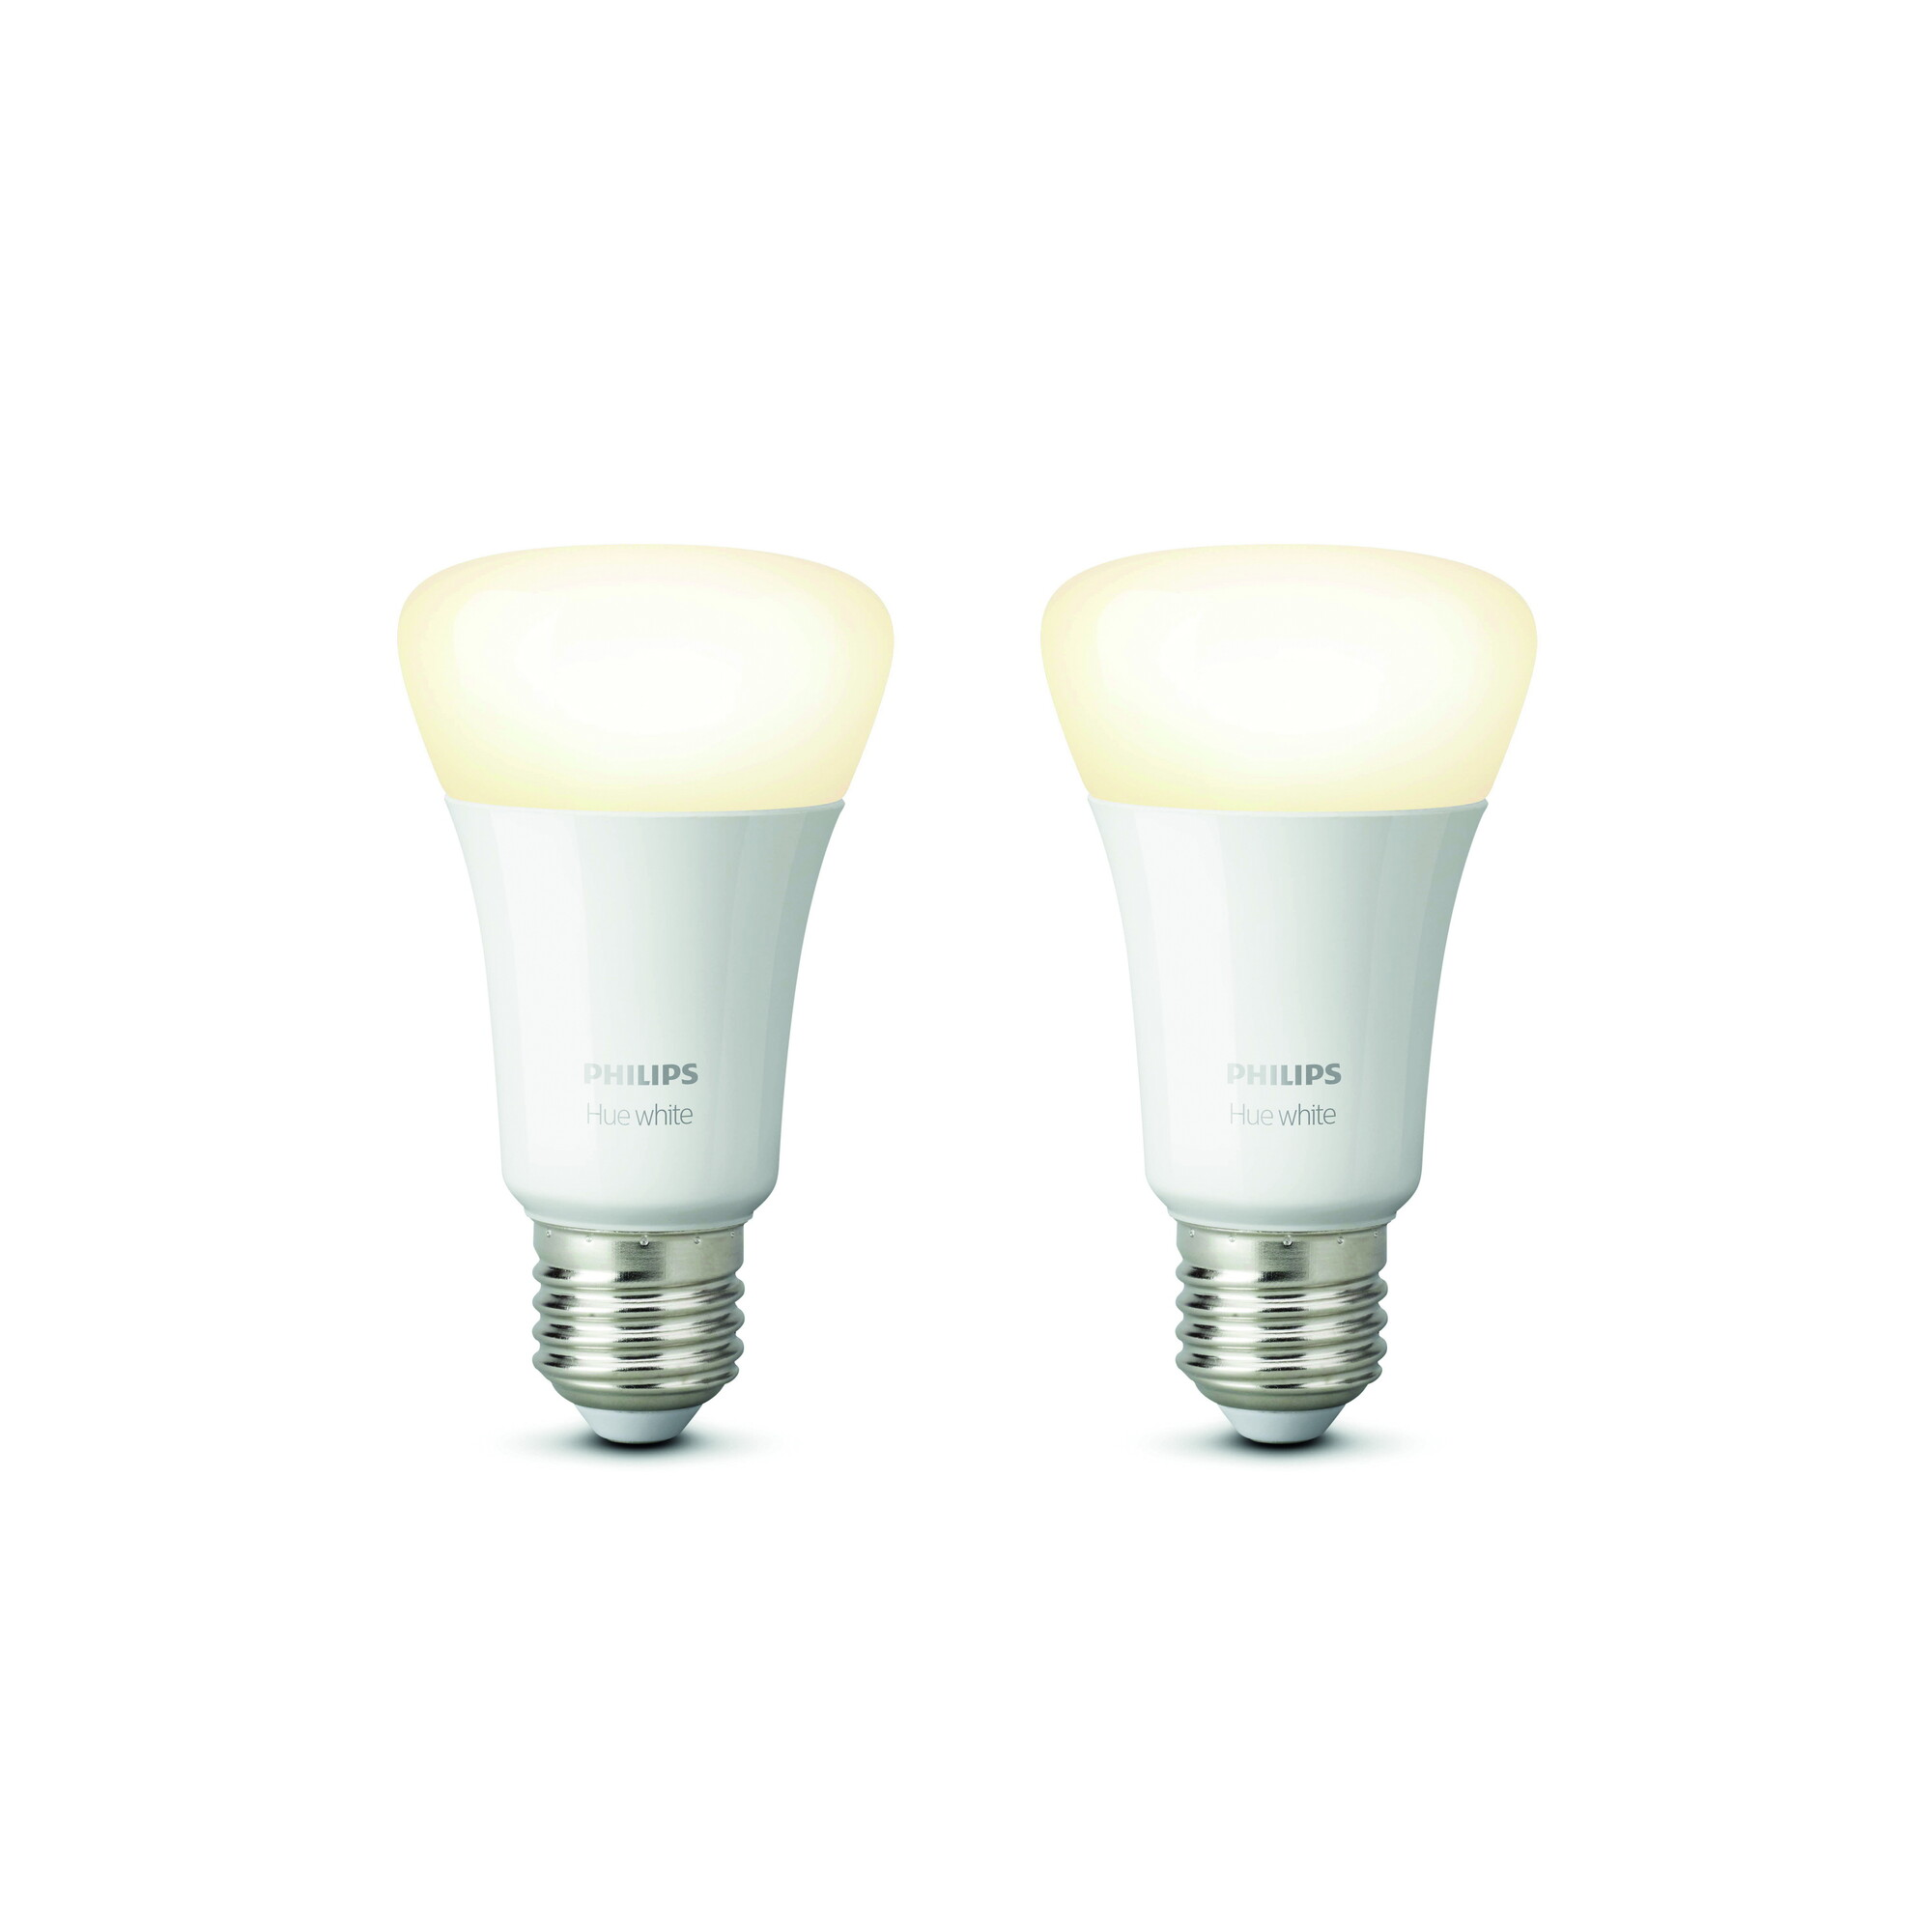 Philips HUE White E27 9W 806lm 2700K Ampoule Opaque